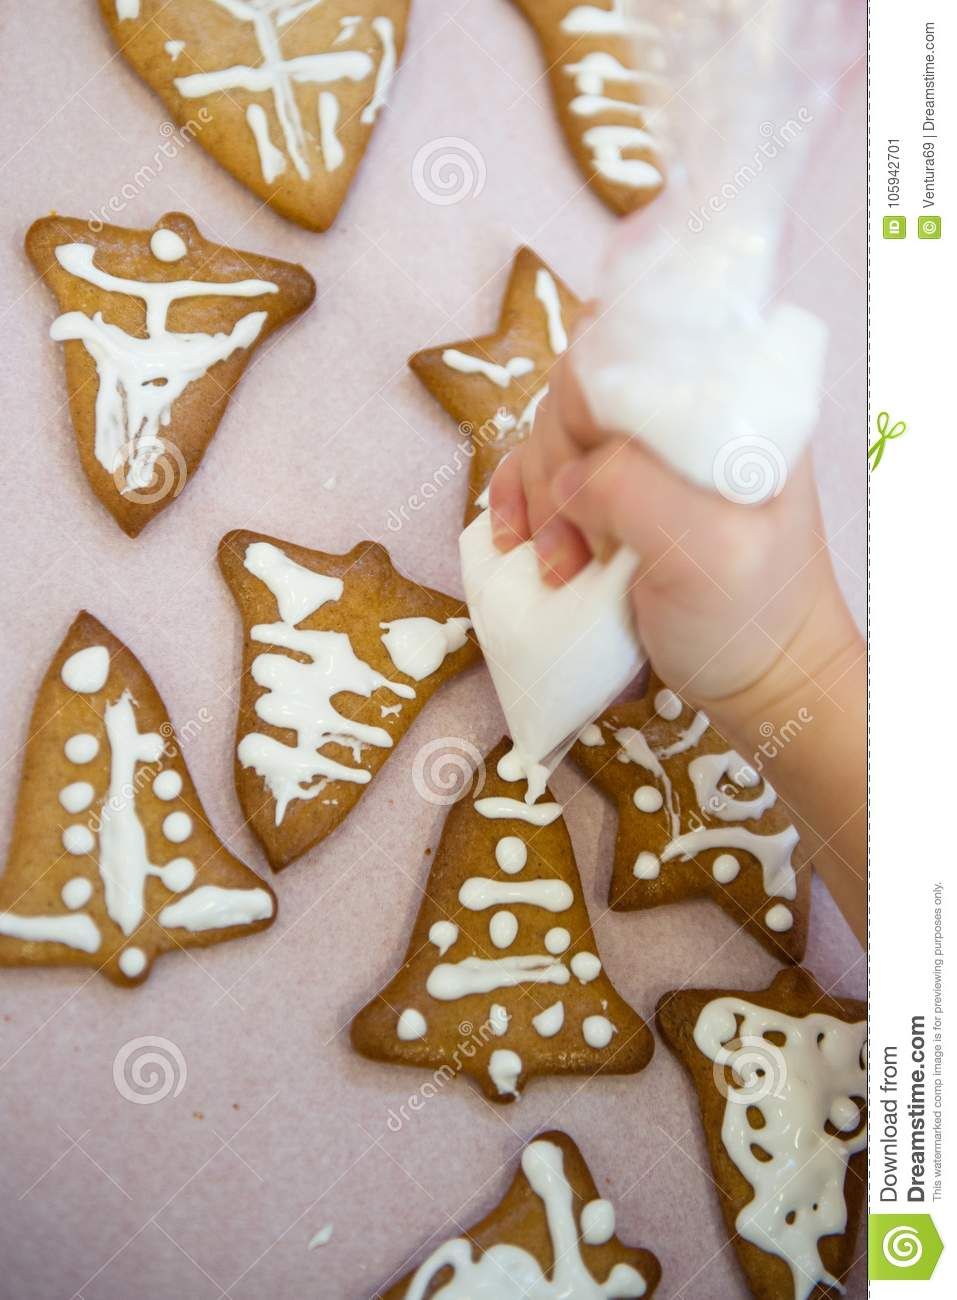 Kid Decorates Christmas Cookies Stock Image - Image of family ...